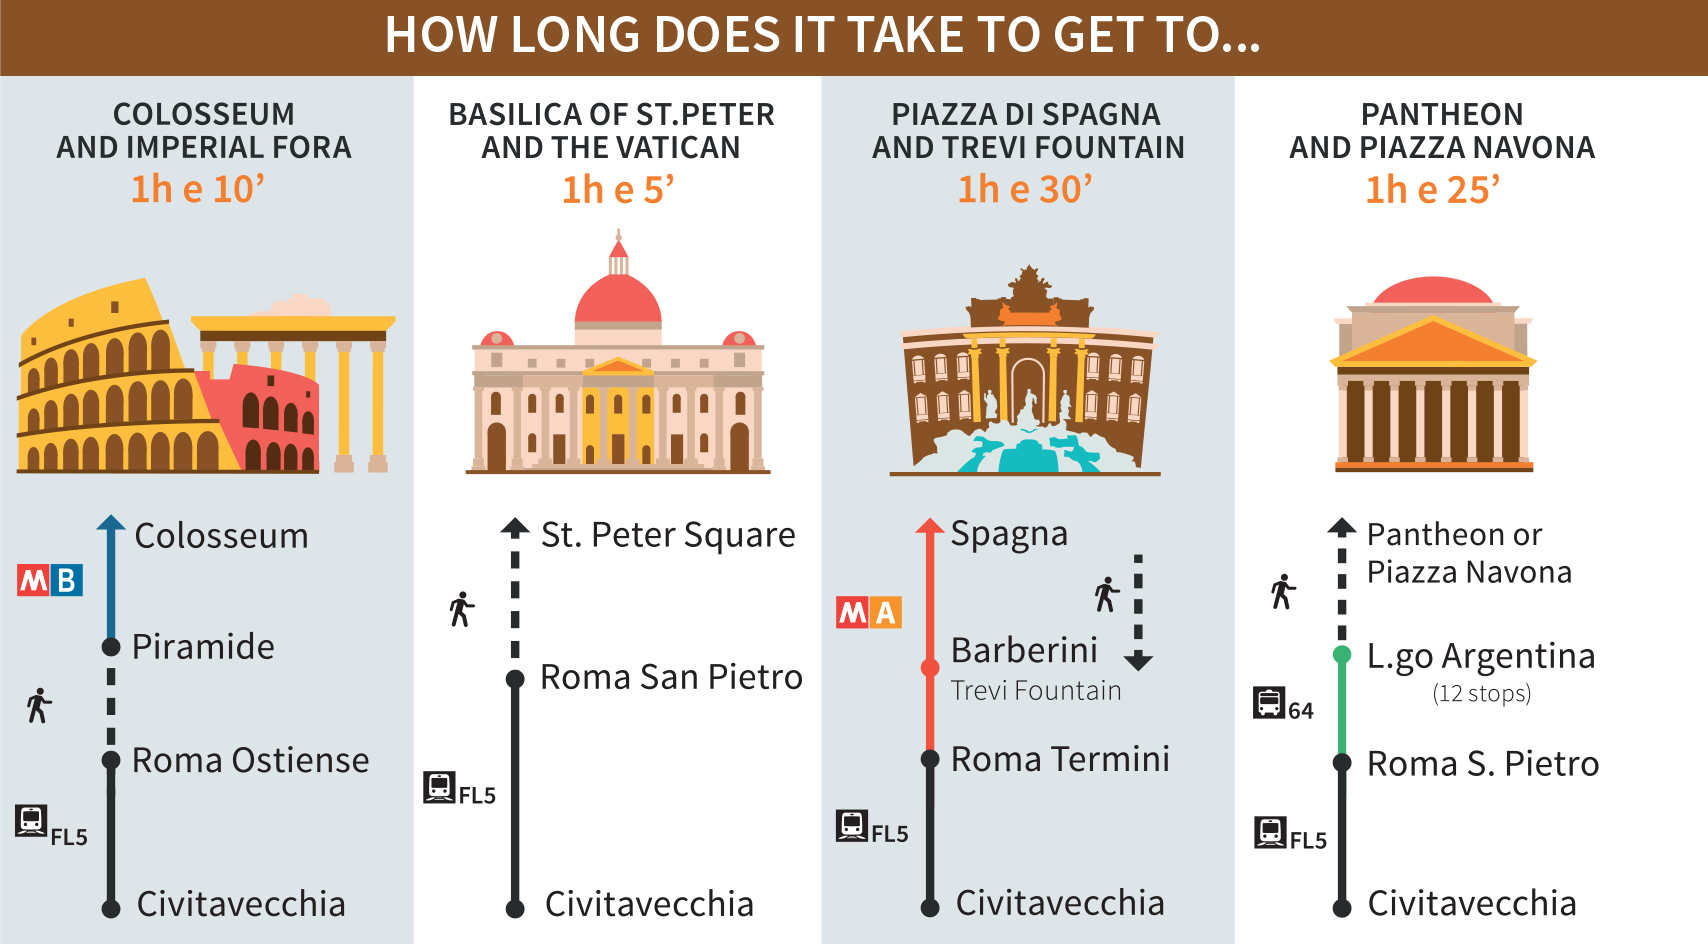 Guide for Cruise Passengers: how long does it take to get to the Colosseum, Imperial Fora, Saint Peter's Basilica, Piazza di Spagna, Trevi Fountain, Pantheon and Piazza Navona